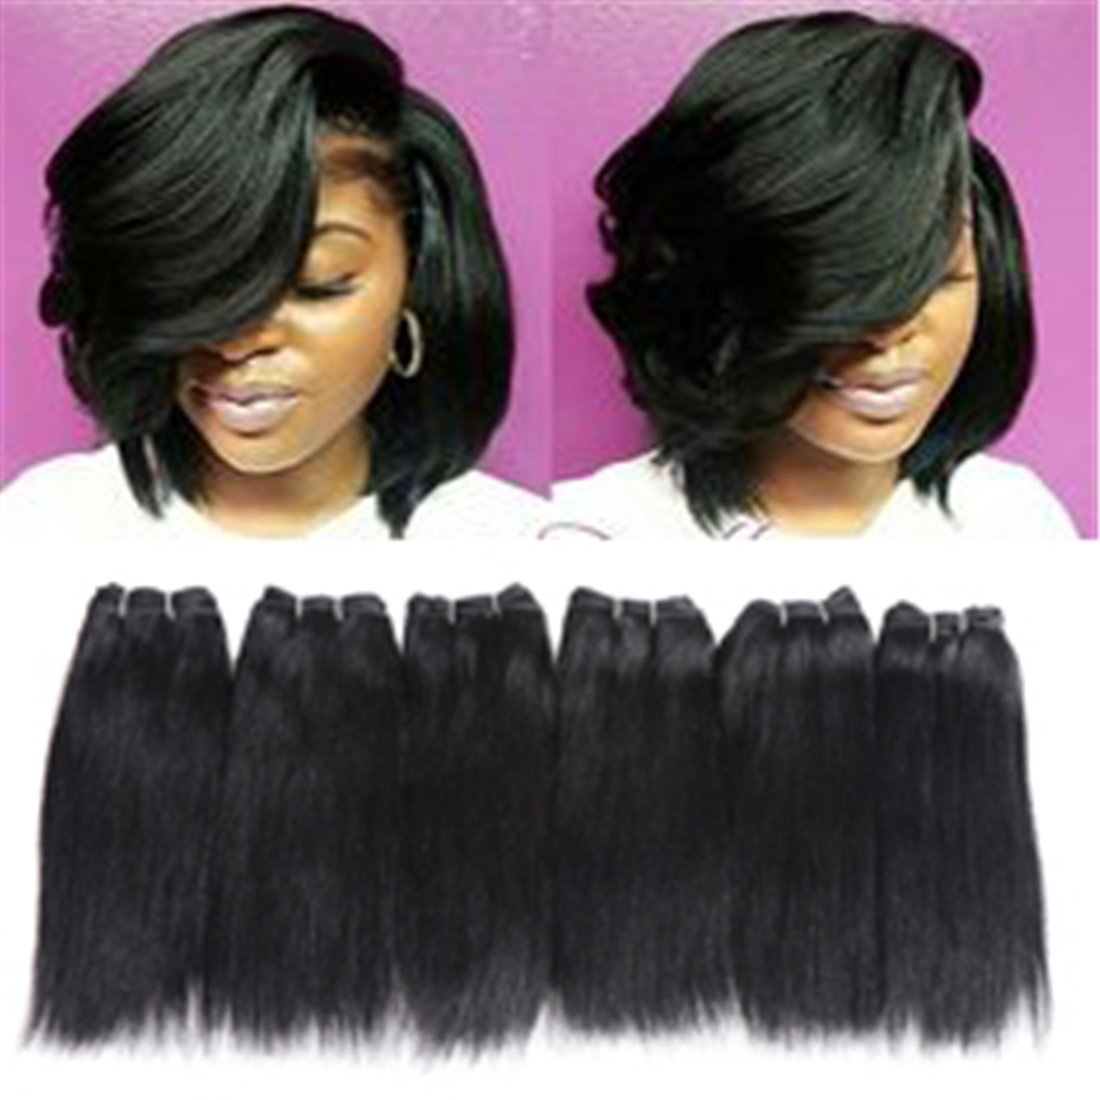 6 Bundles Extensions Hair Virg Human Clearance SALE! Limited time! Weave Seasonal Wrap Introduction Straight